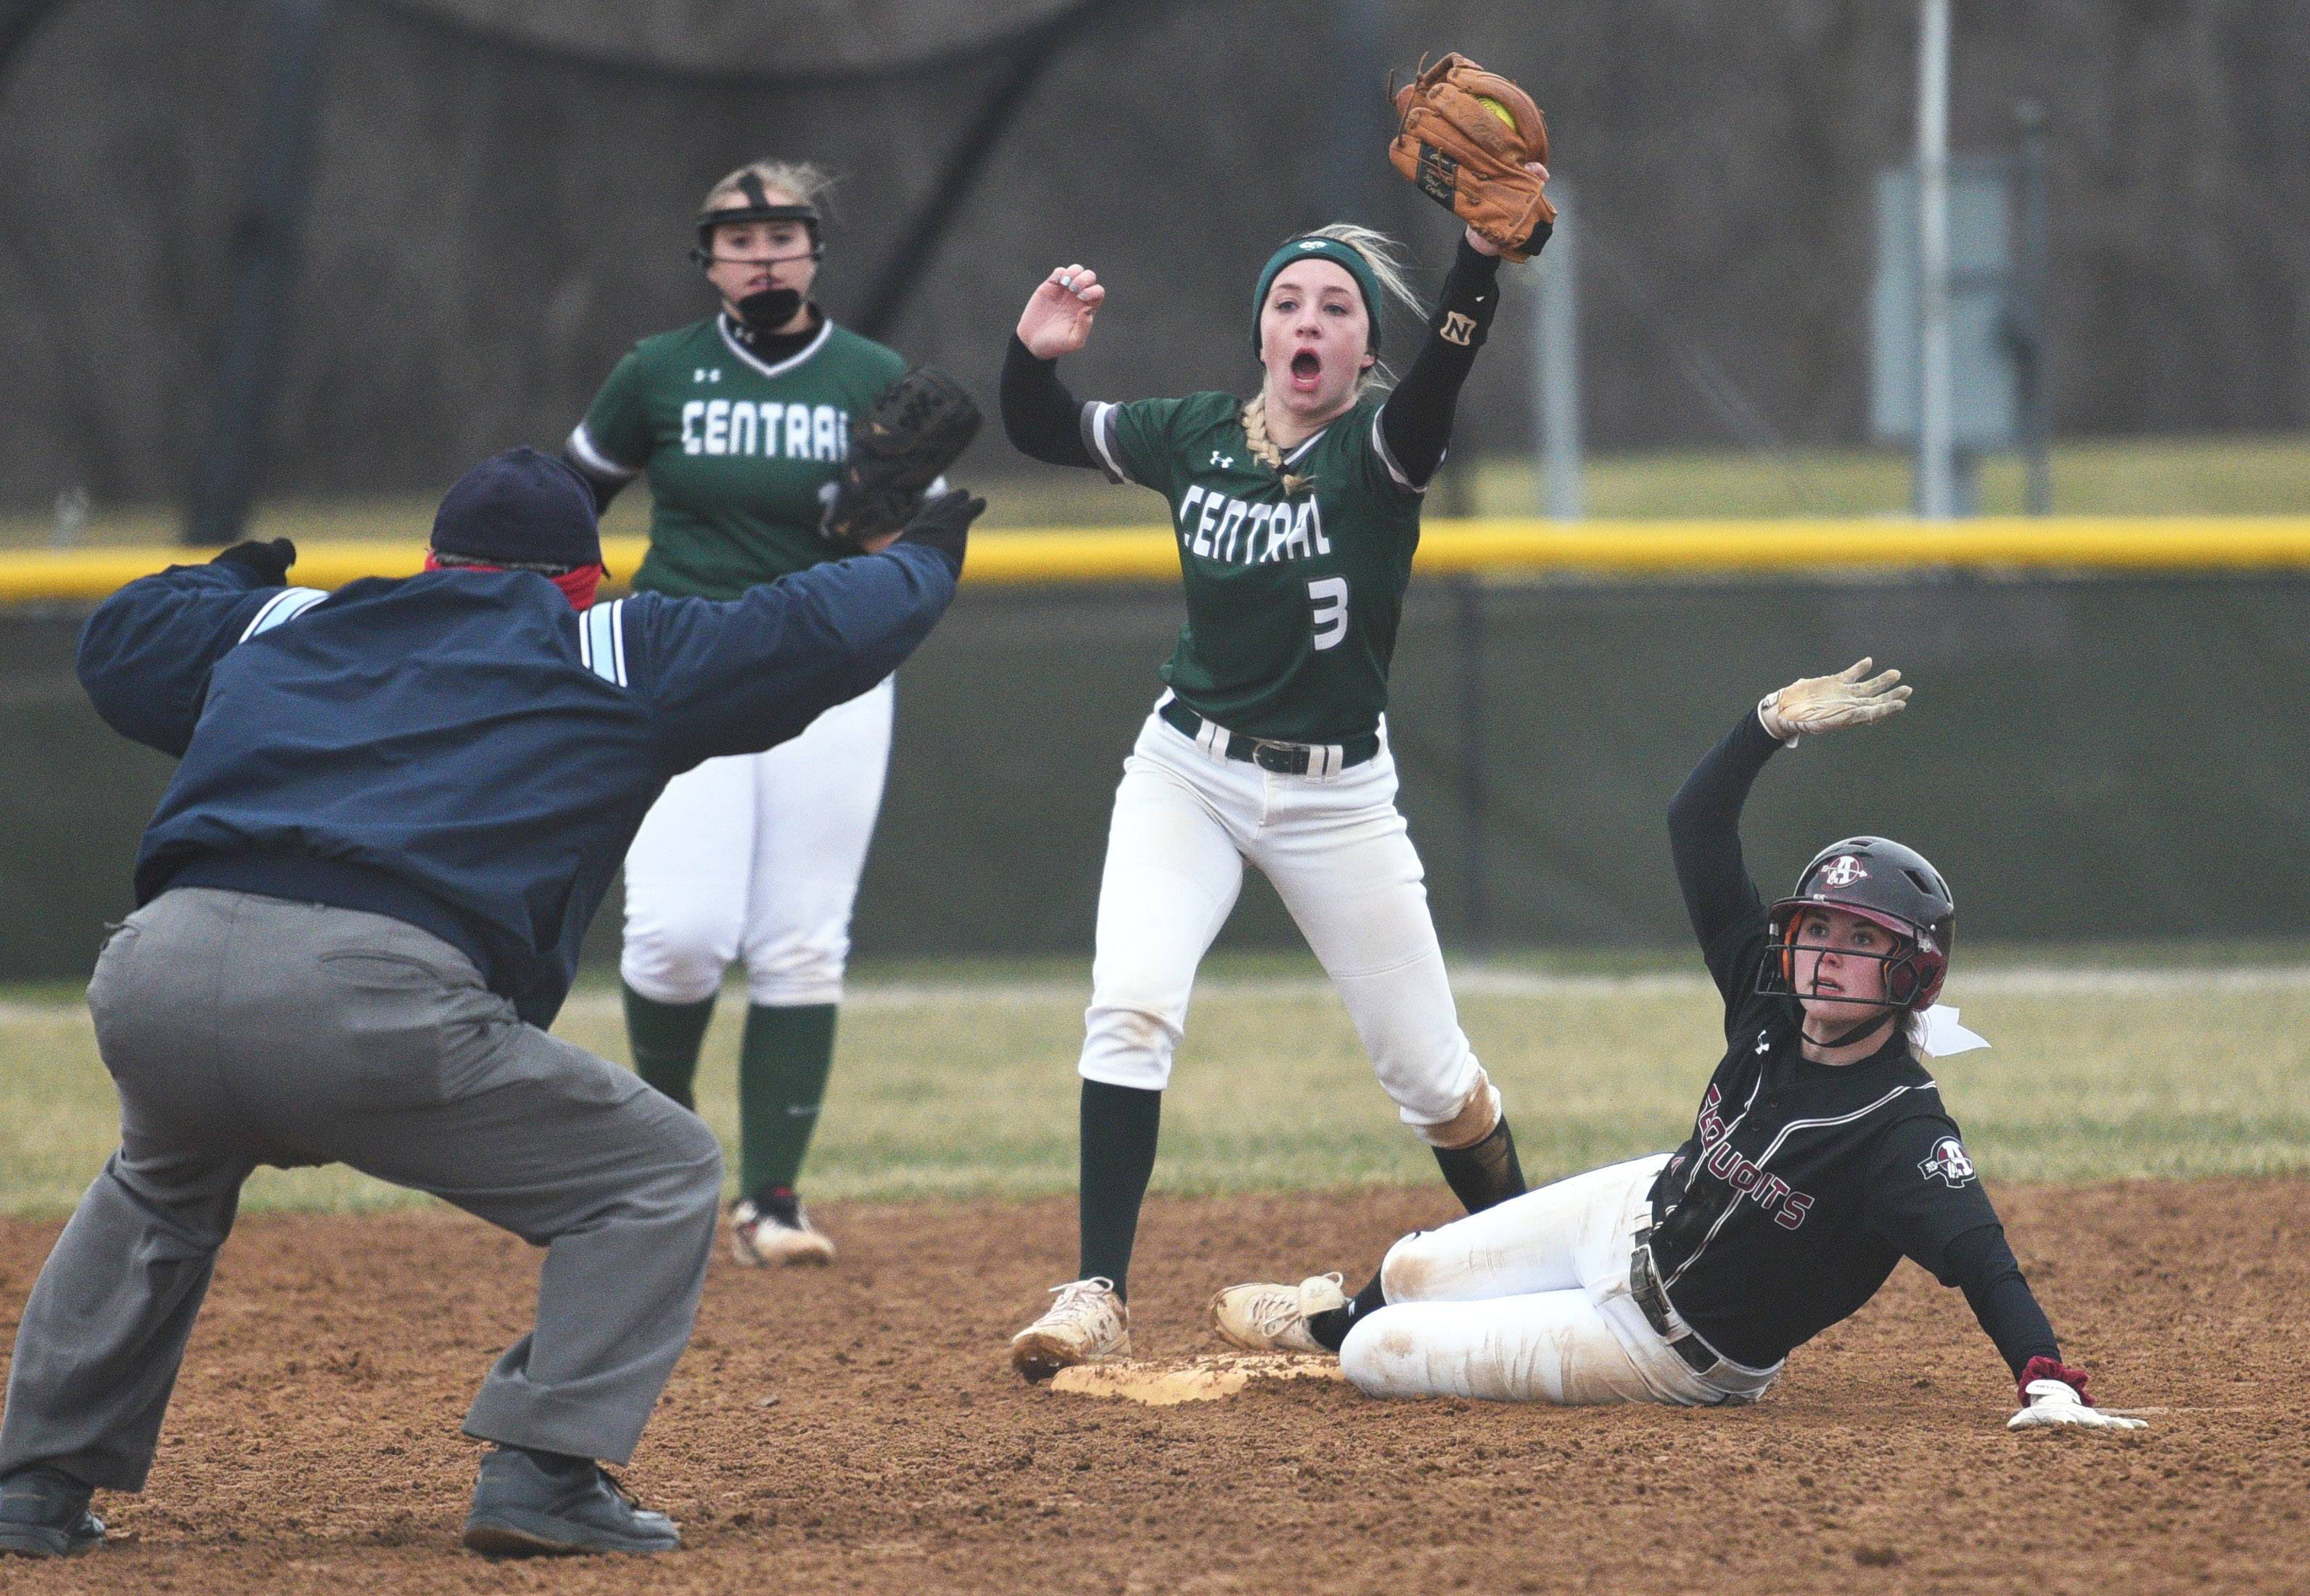 Antioch's Abby Pyburn, right, is called safe at second base by the umpire despite Grayslake Central's Kennedy Stoffel (3) showing him the ball after laying down the tag during Thursday's softball game in Antioch.